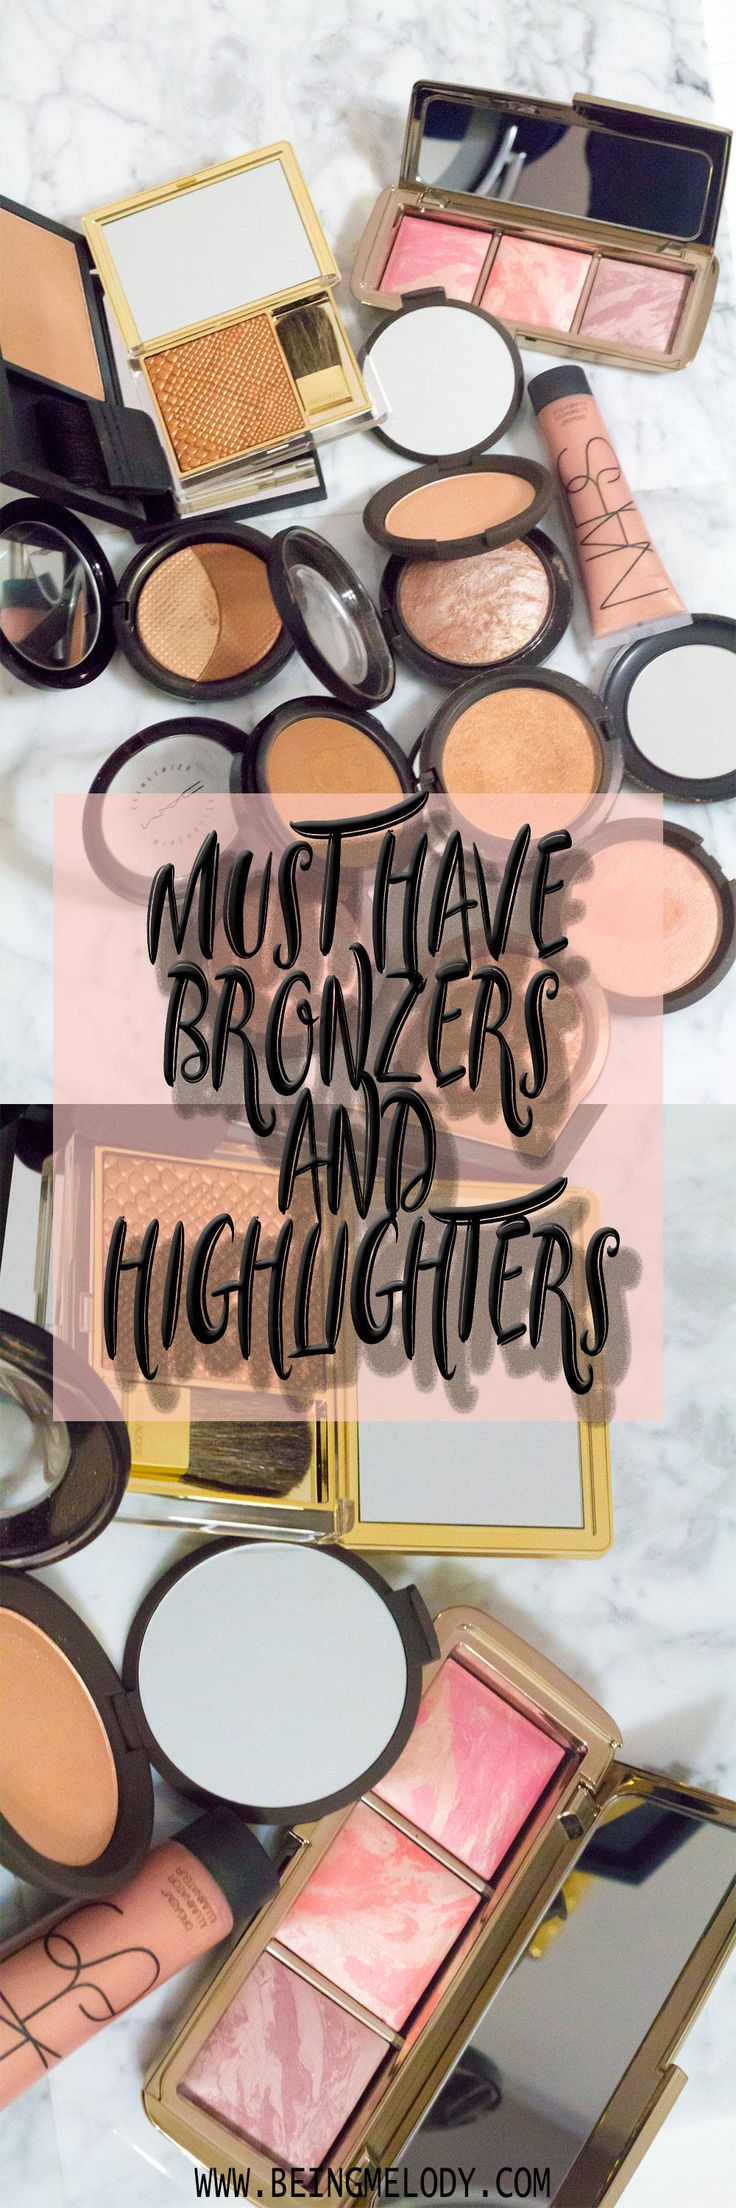 Bronzers and Highlighters are a big part of makeup routines everywhere. With so many makeup brands on the market, how do you know which one is the best for you. Check out this list of must have bronzers and highlighters that will help give you the perfect glow.  www.Beingmelody.com 